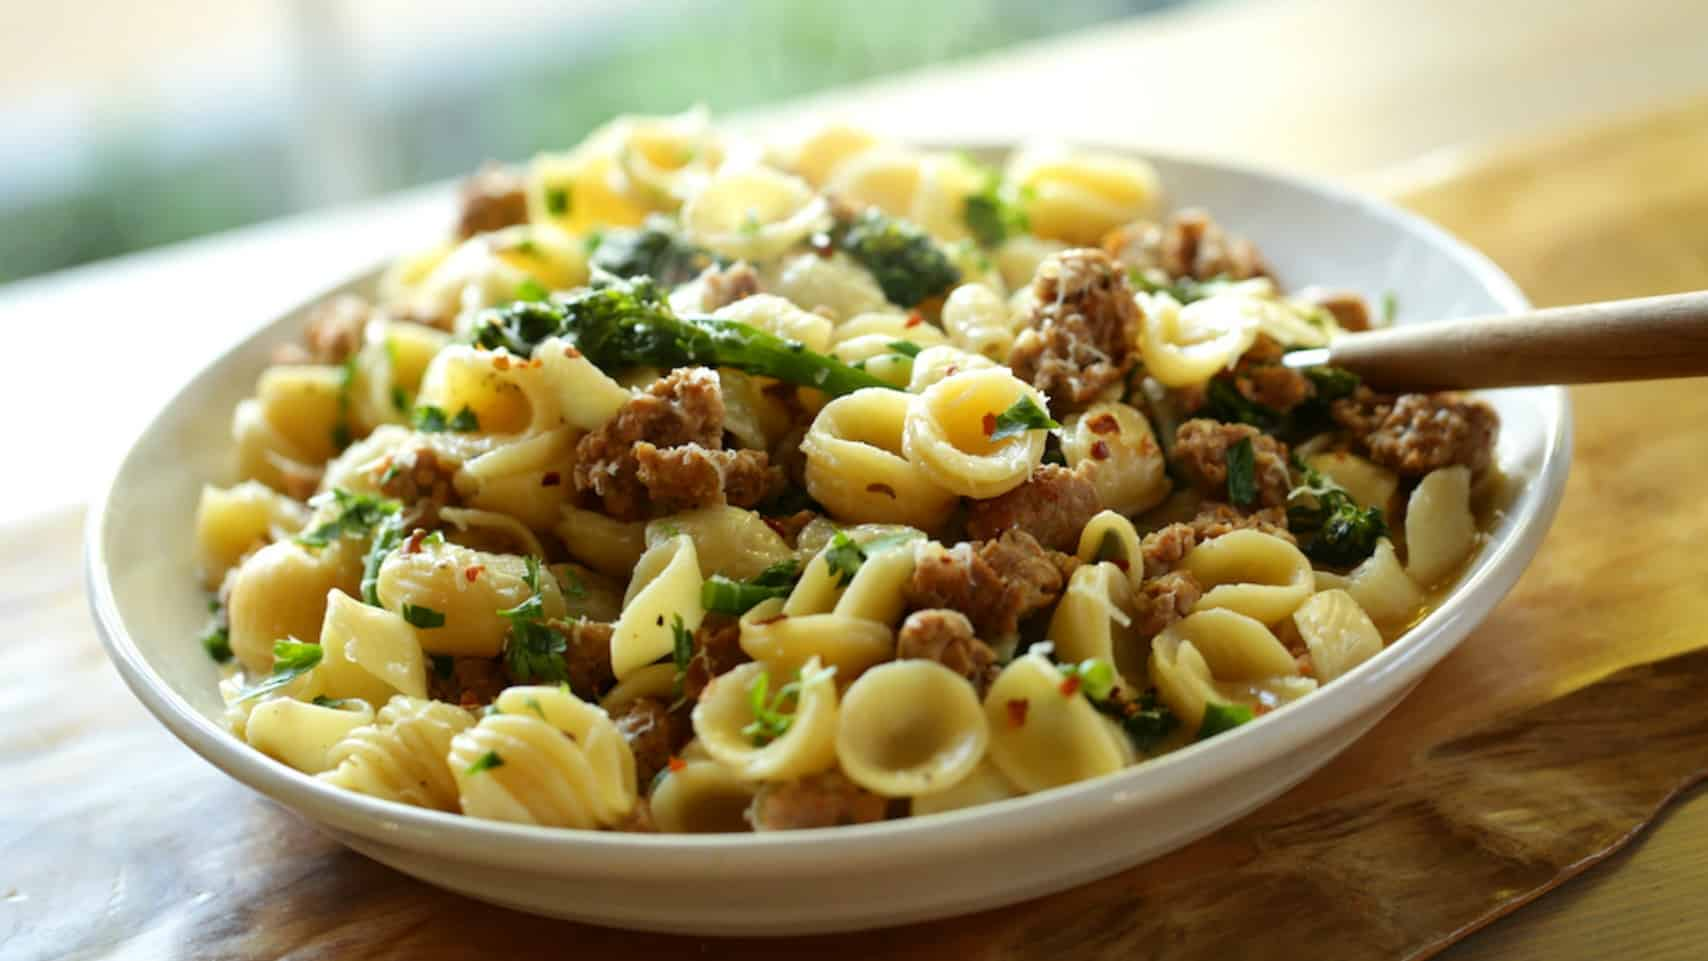 Orecchiette Pasta with Sausage and Broccoli